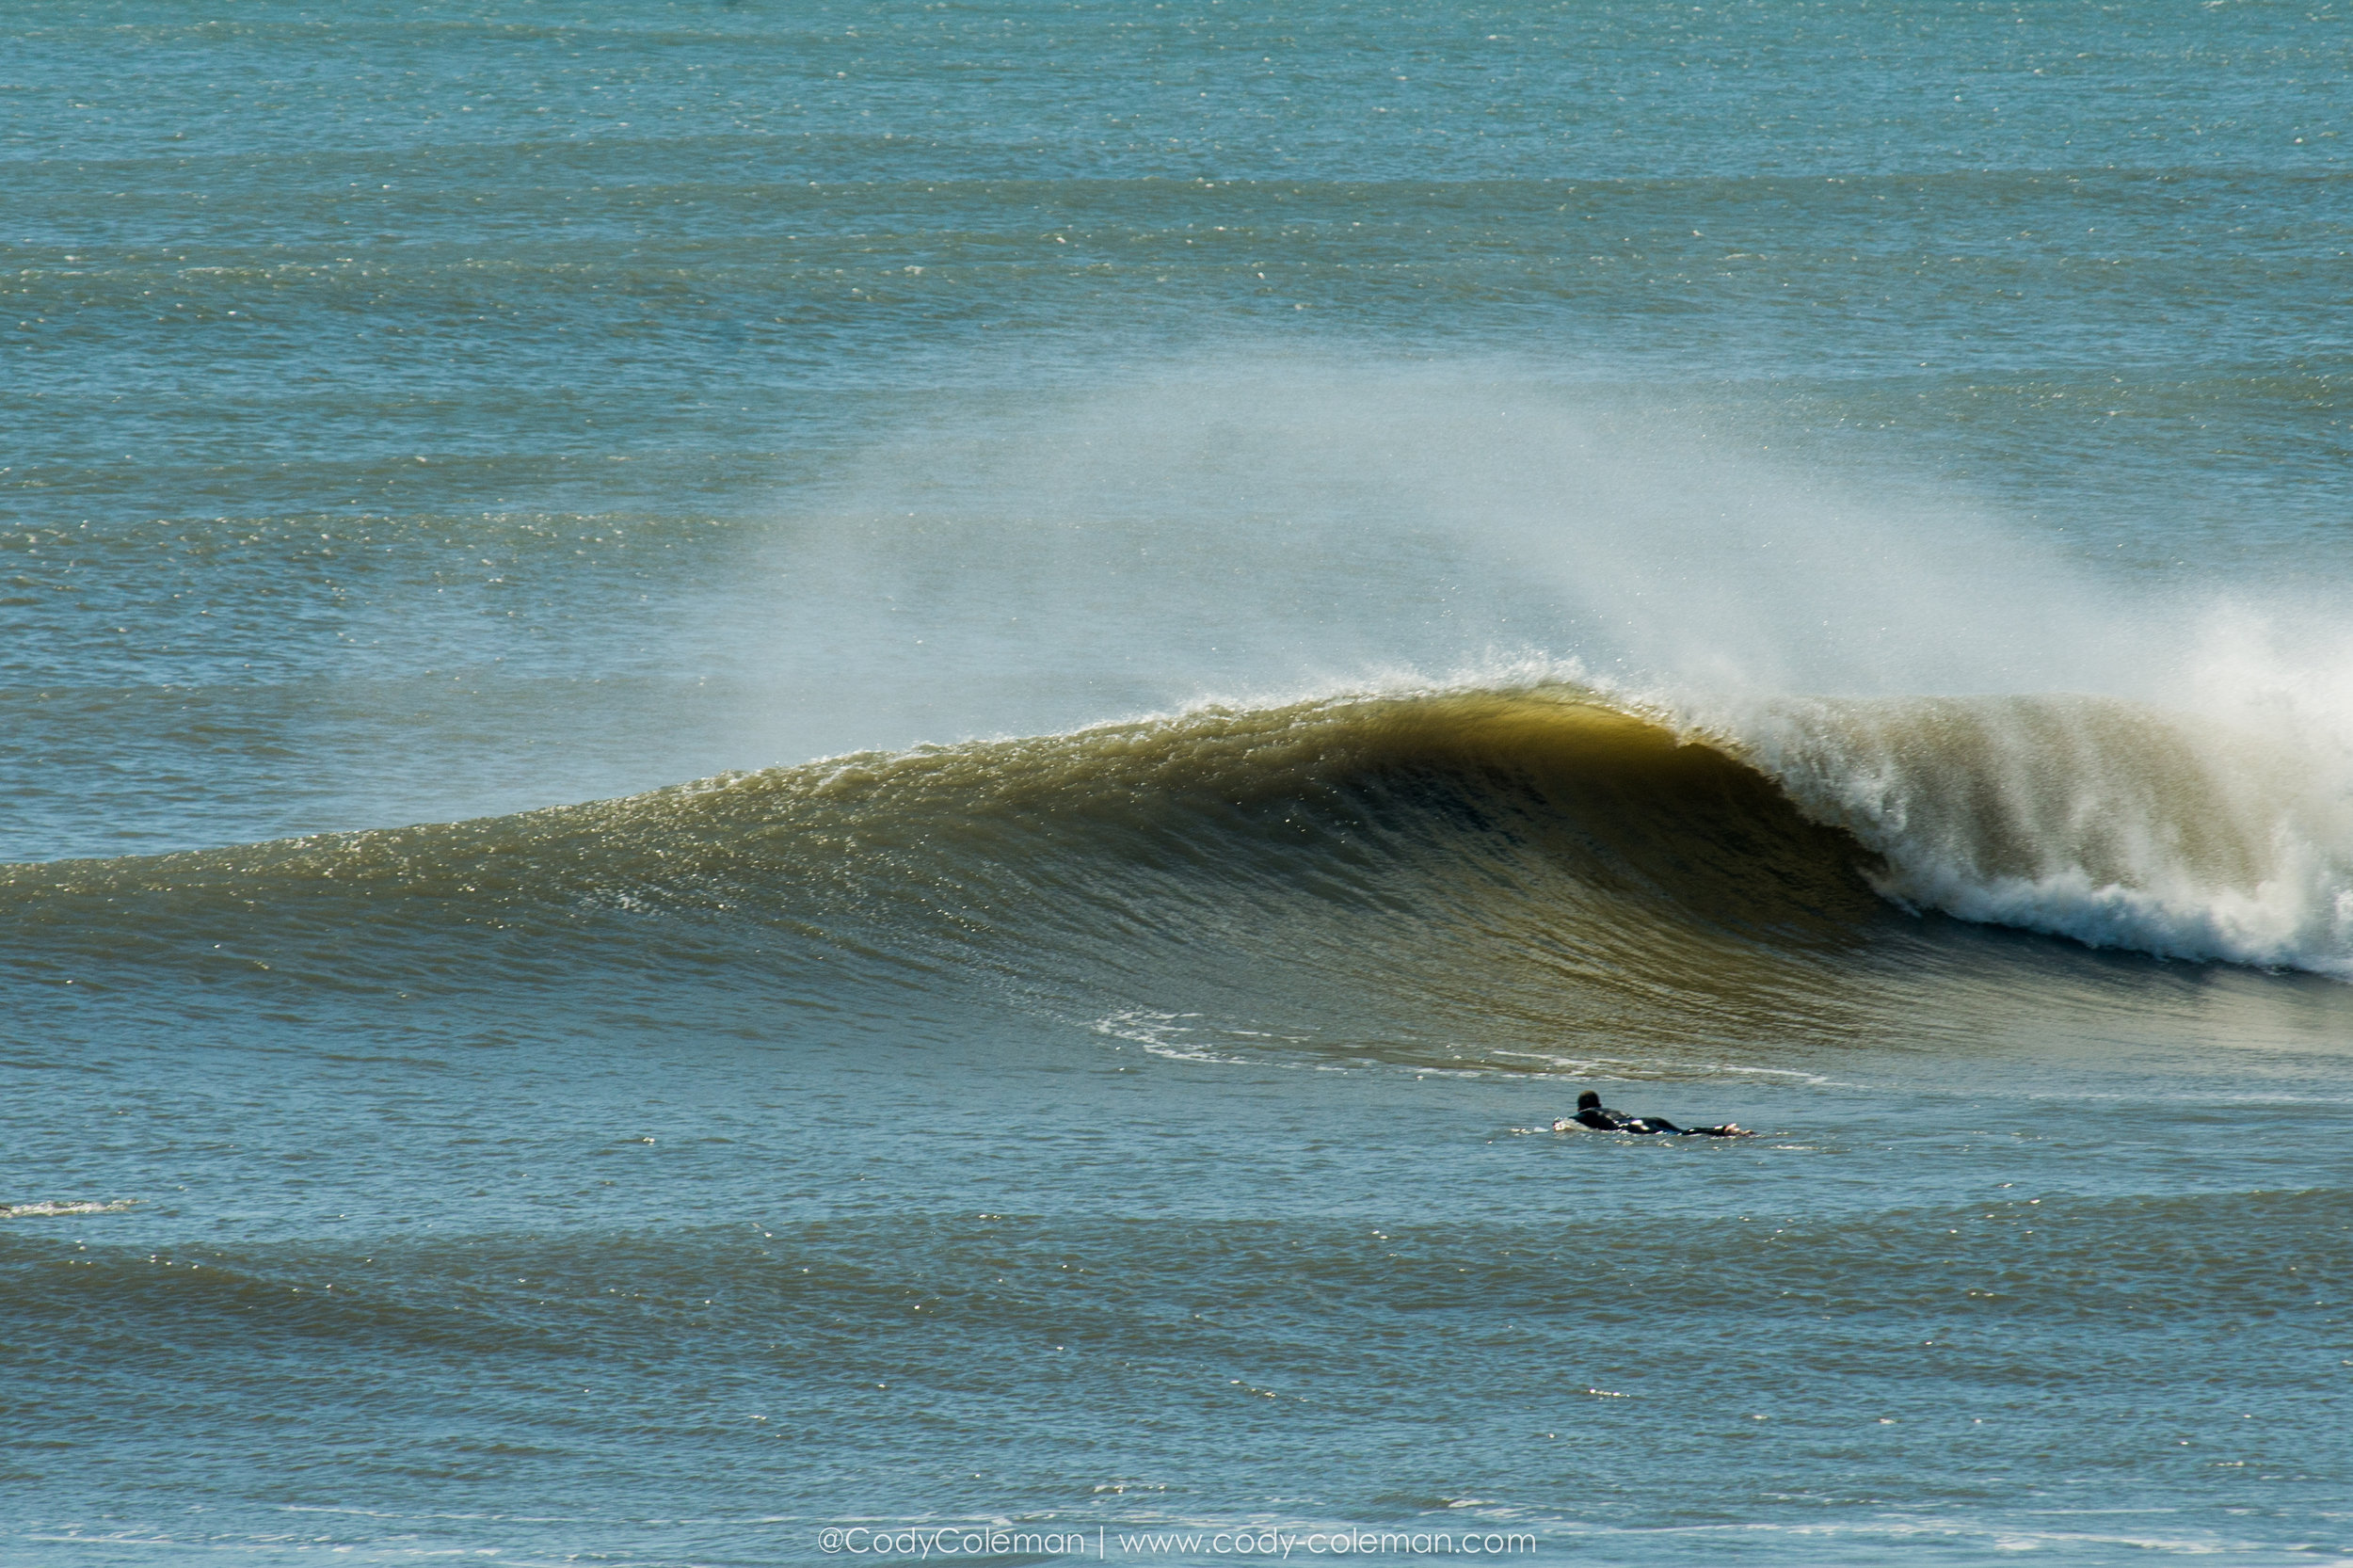 Its been long time since I have shot land photos, but with a large swell breaking on the outside I felt the morning session was best viewed from this vantage point.